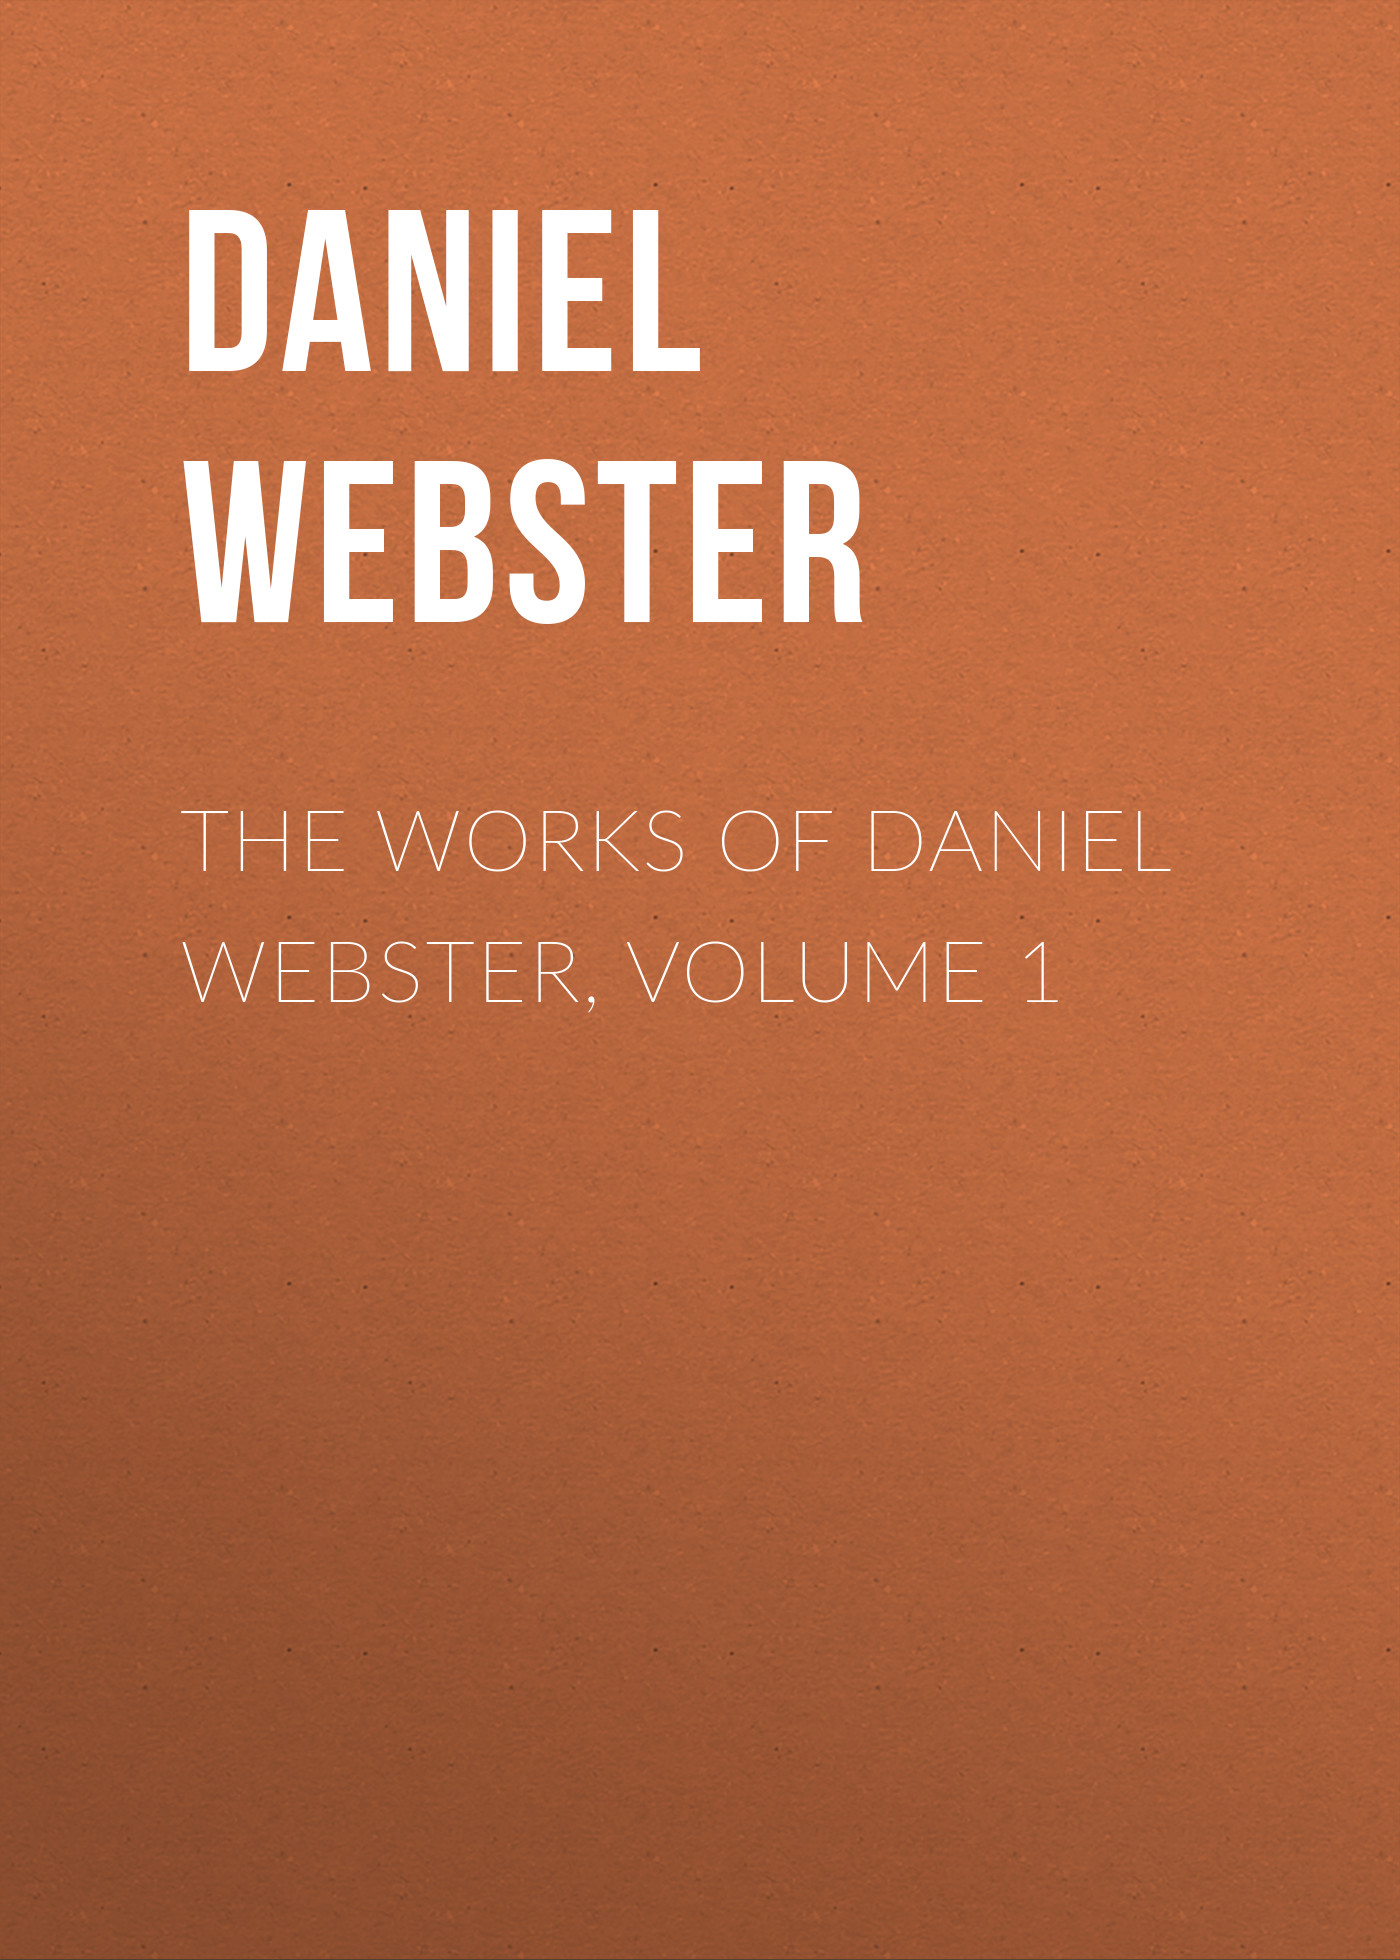 Daniel Webster The Works of Daniel Webster, Volume 1 подсвечник winter wings дед мороз 7 5 см х 7 5 см х 5 5 см